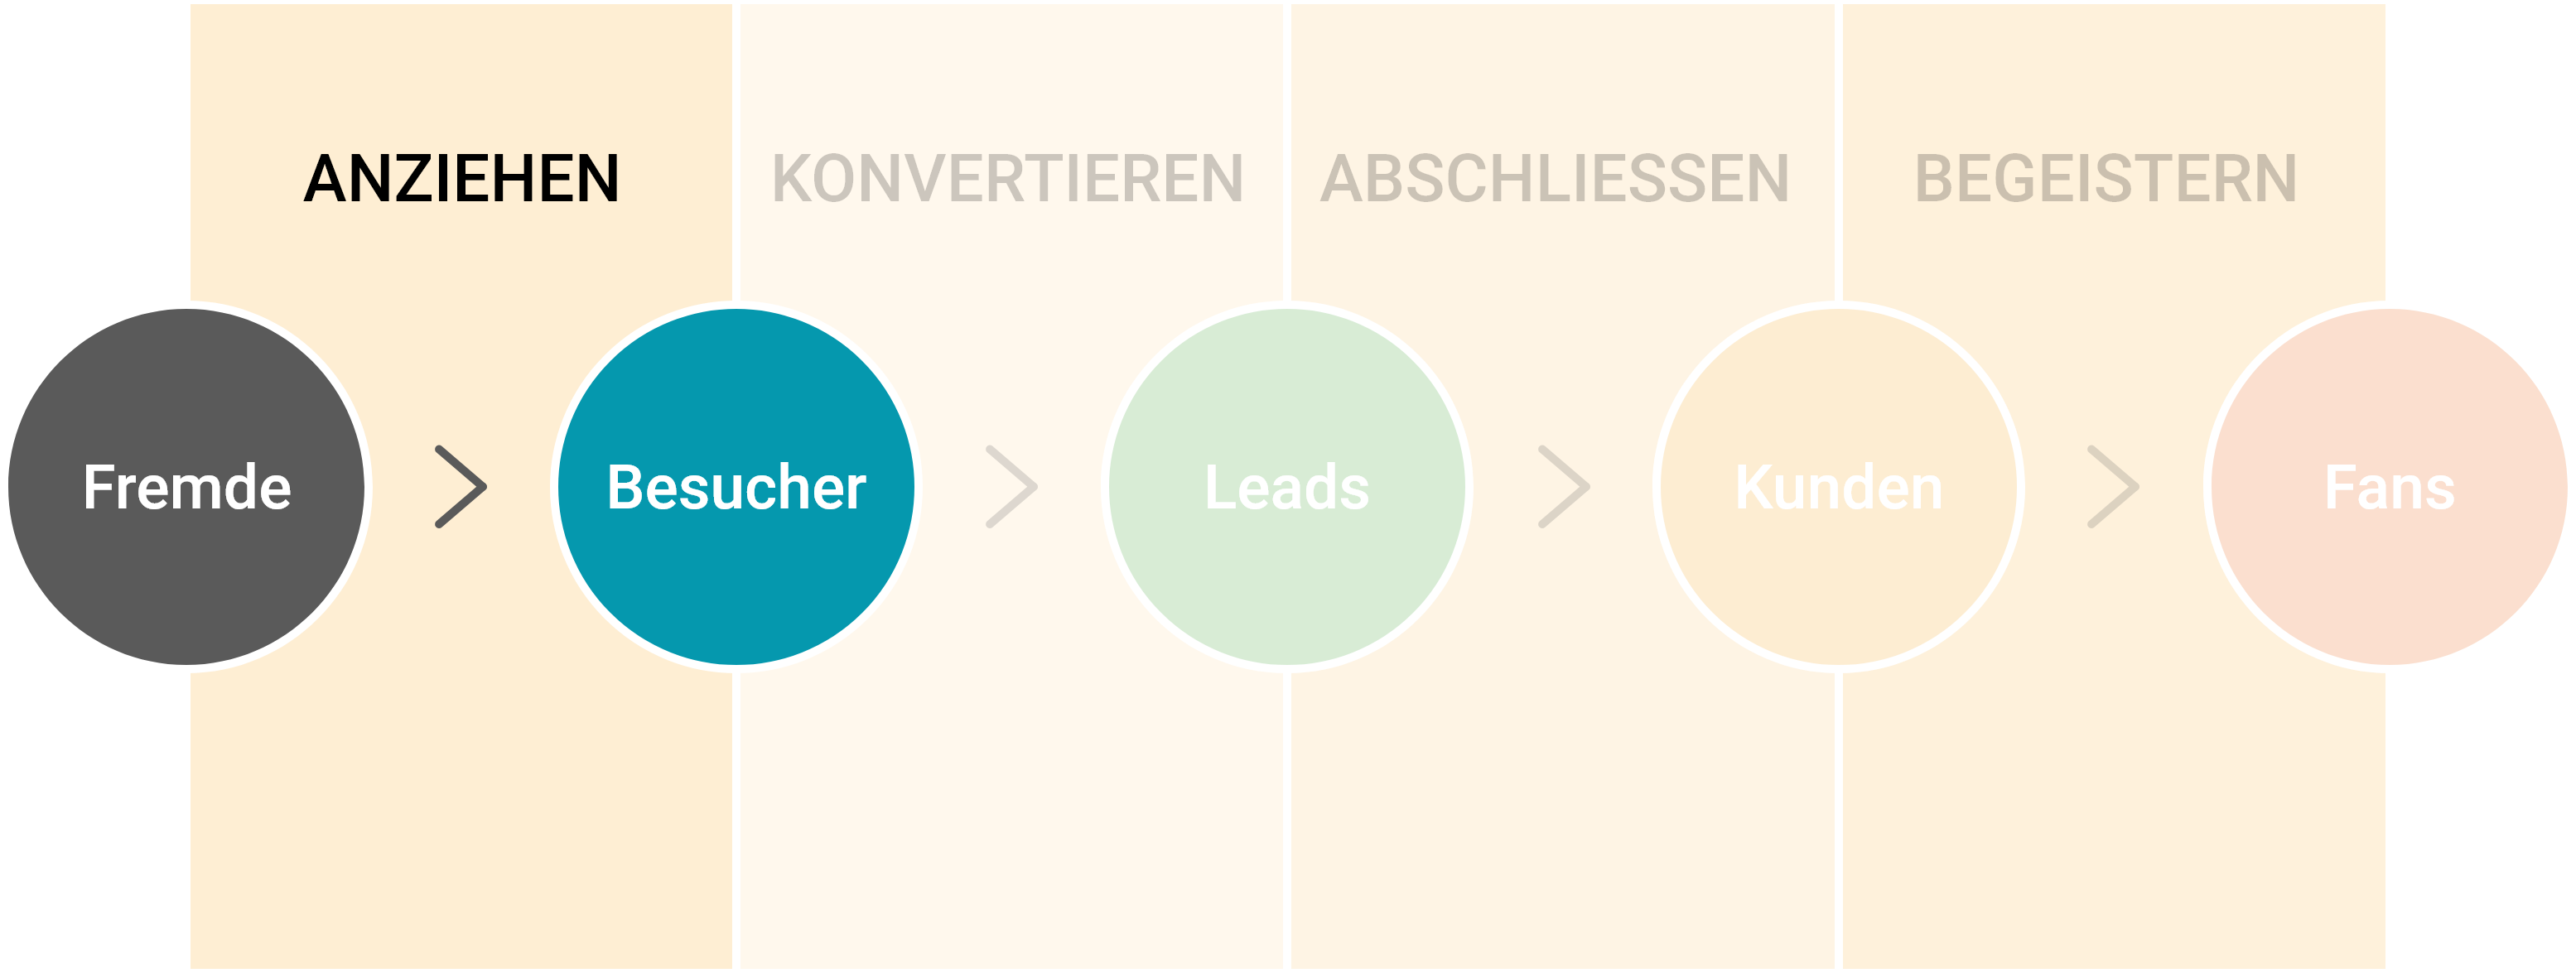 websitetraffic erhöhen durch Inbound Marketing